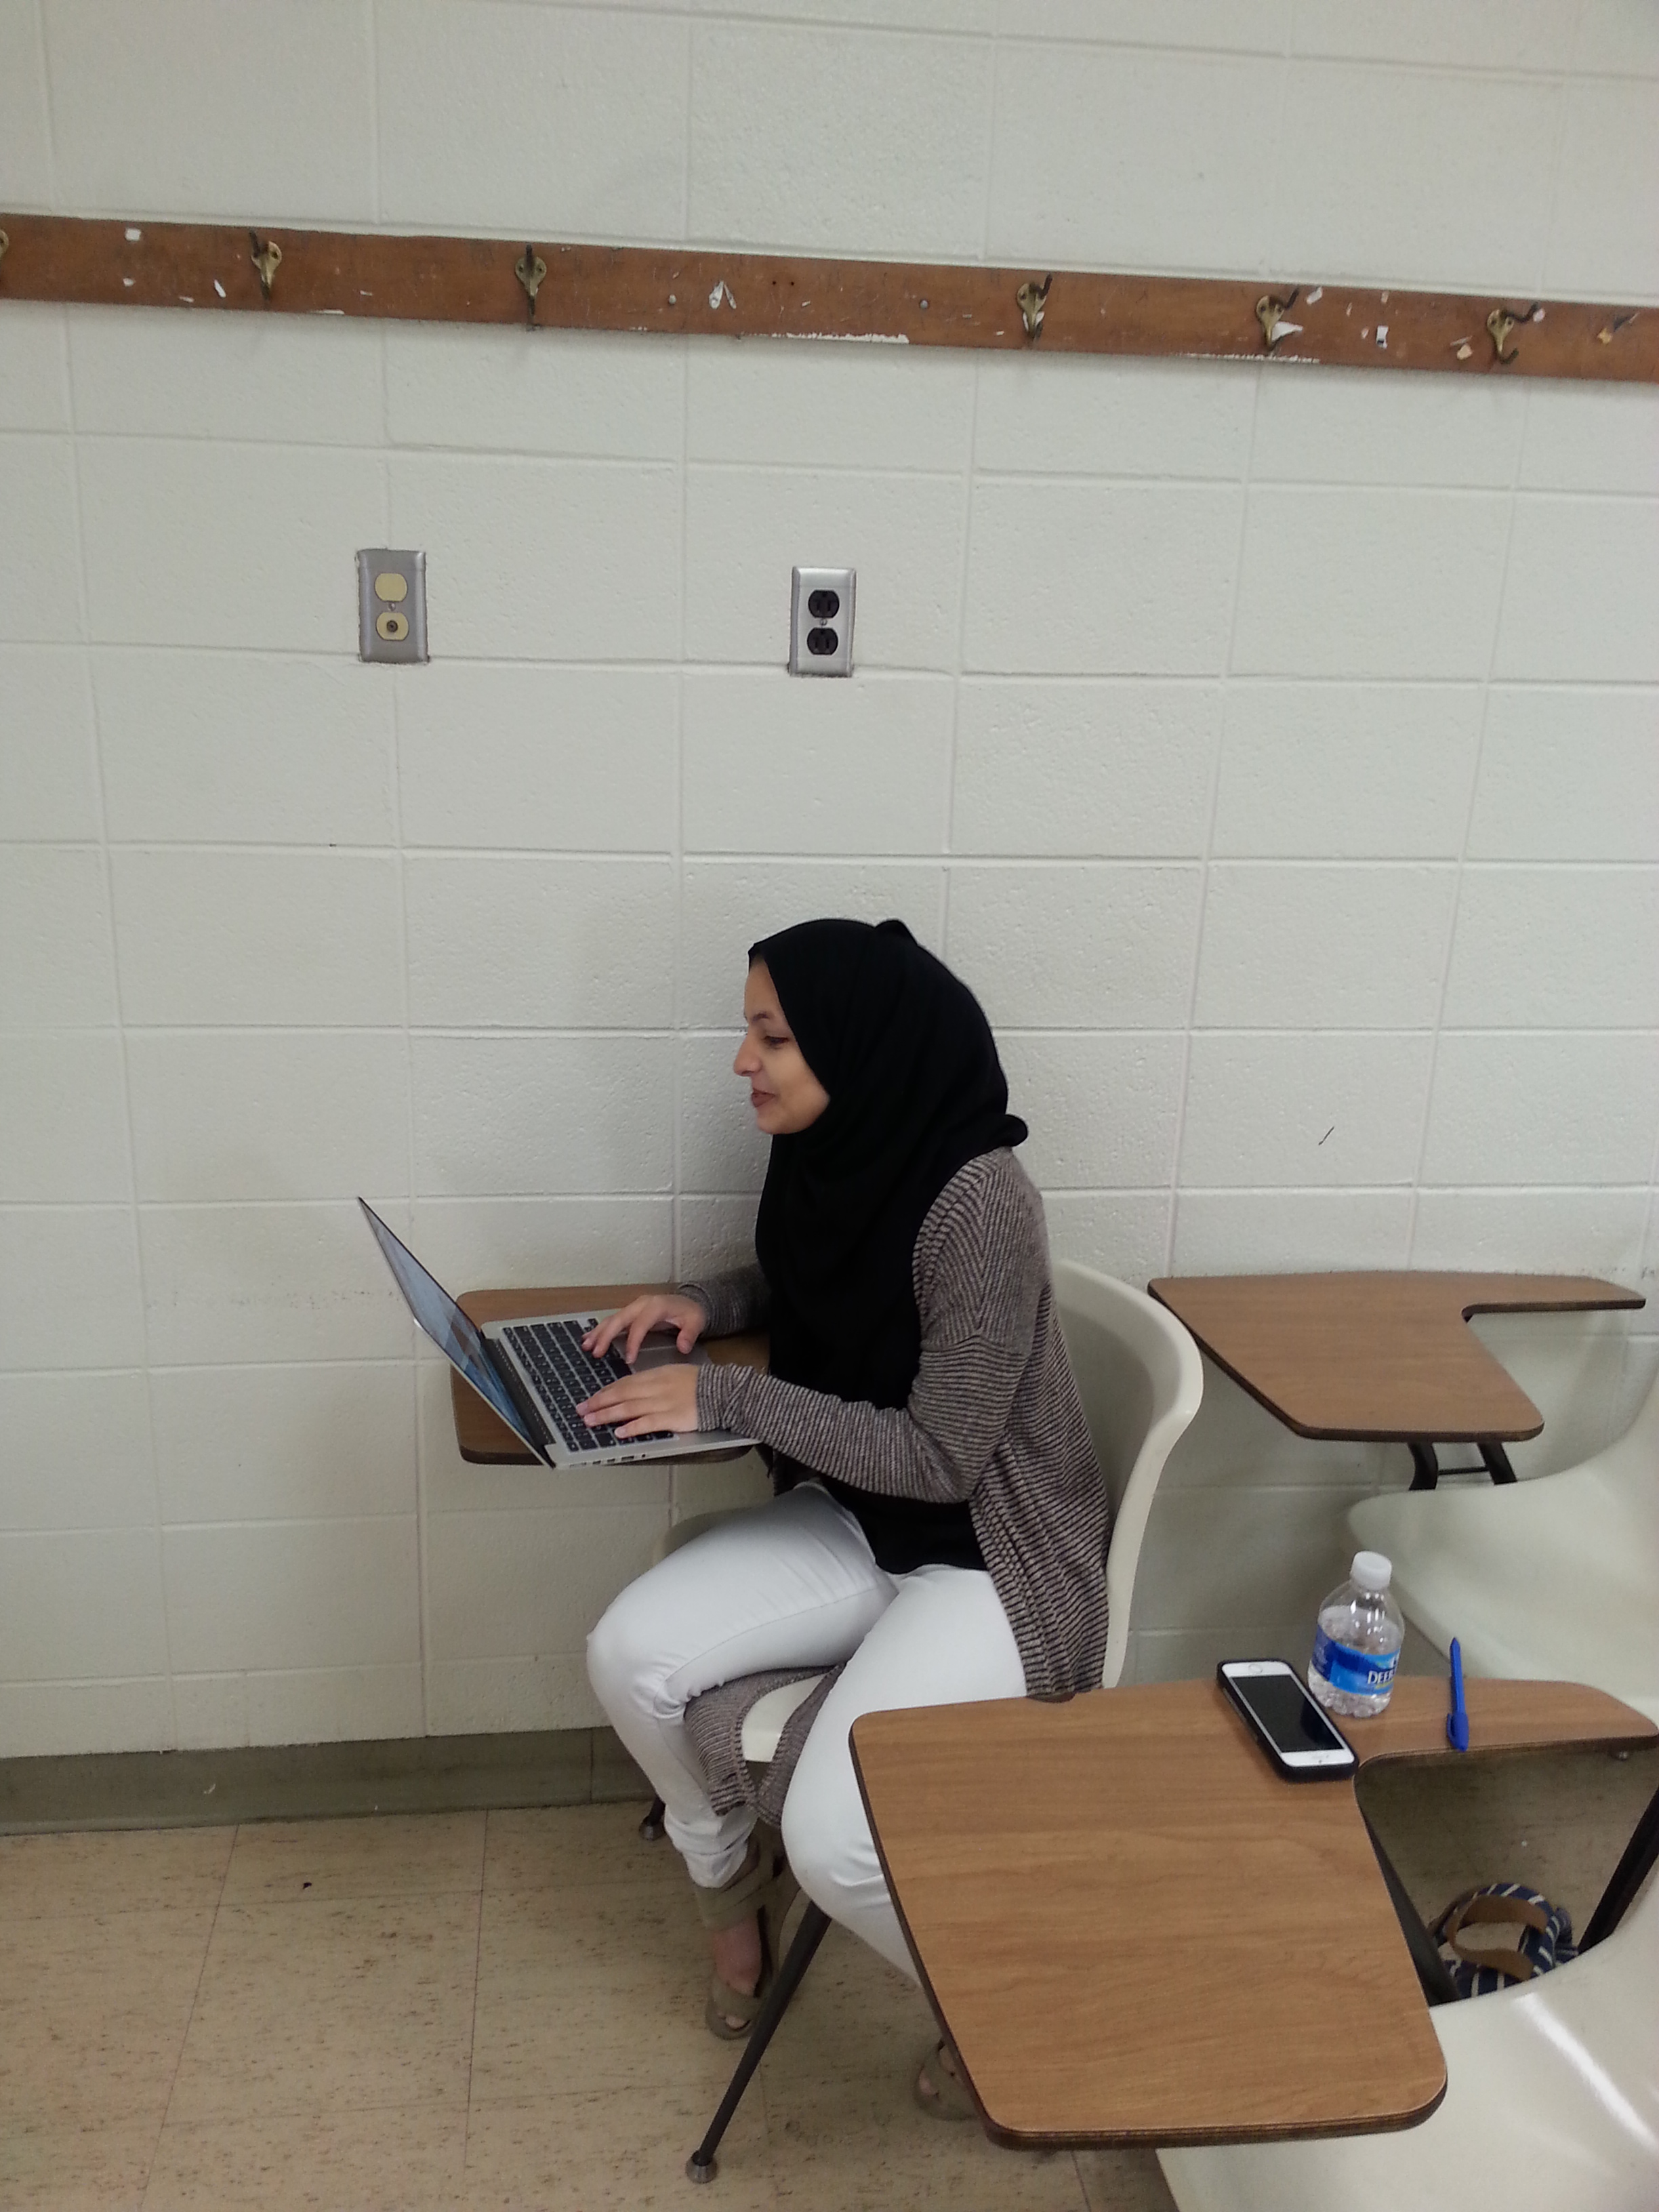 Aya Ben Abdellatif in class at Georgia State University